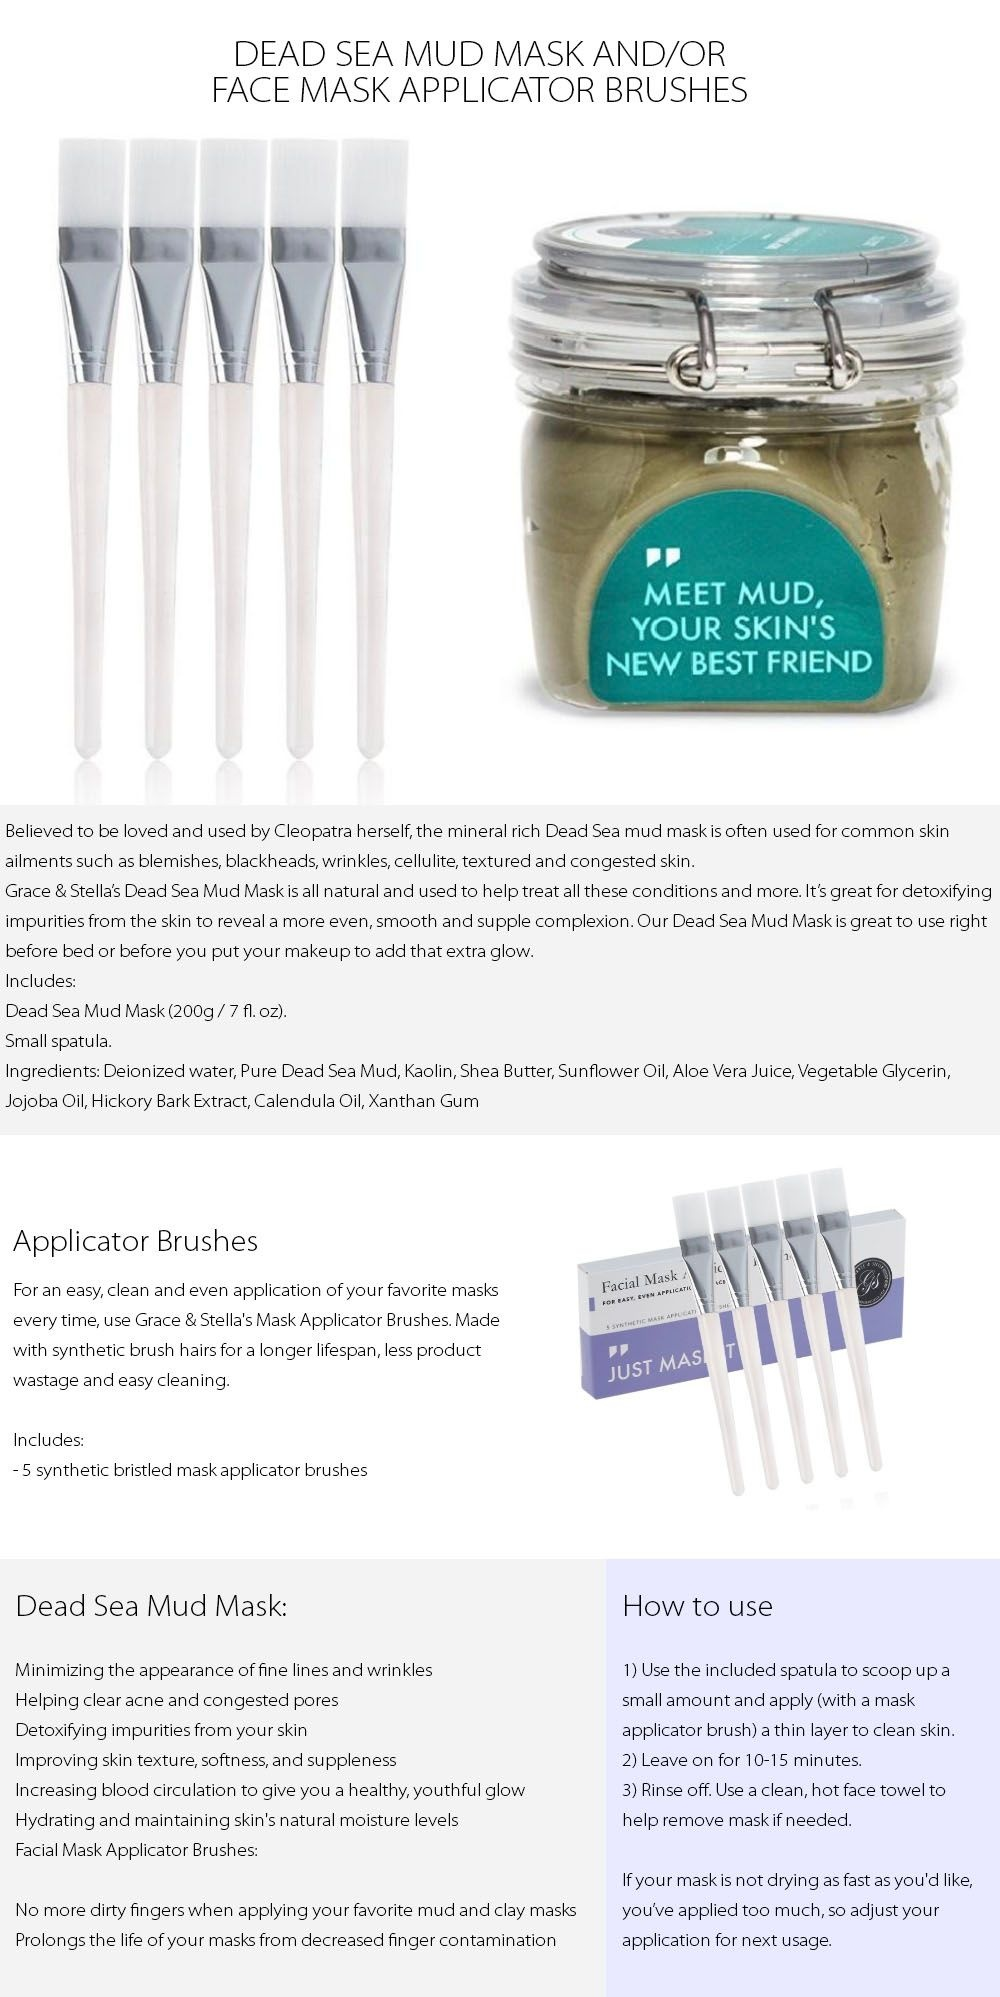 Dead Sea Mud Mask and/or Face Mask Applicator Brushes Mineral Rich Mask